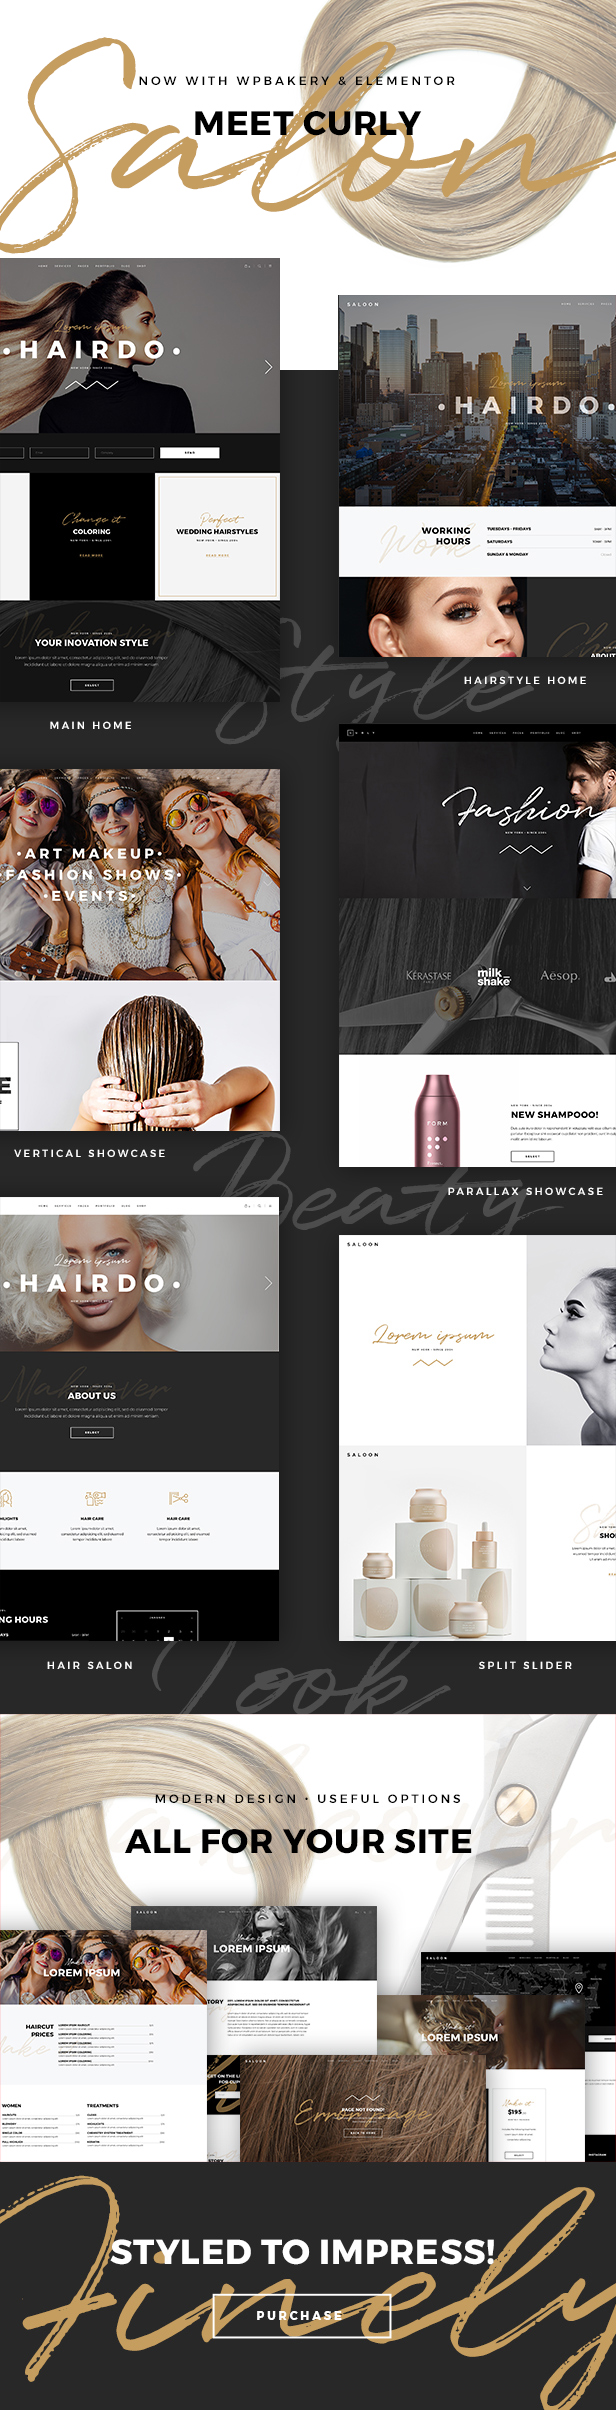 Curly - A Stylish Theme for Hairdressers and Hair Salons - 1